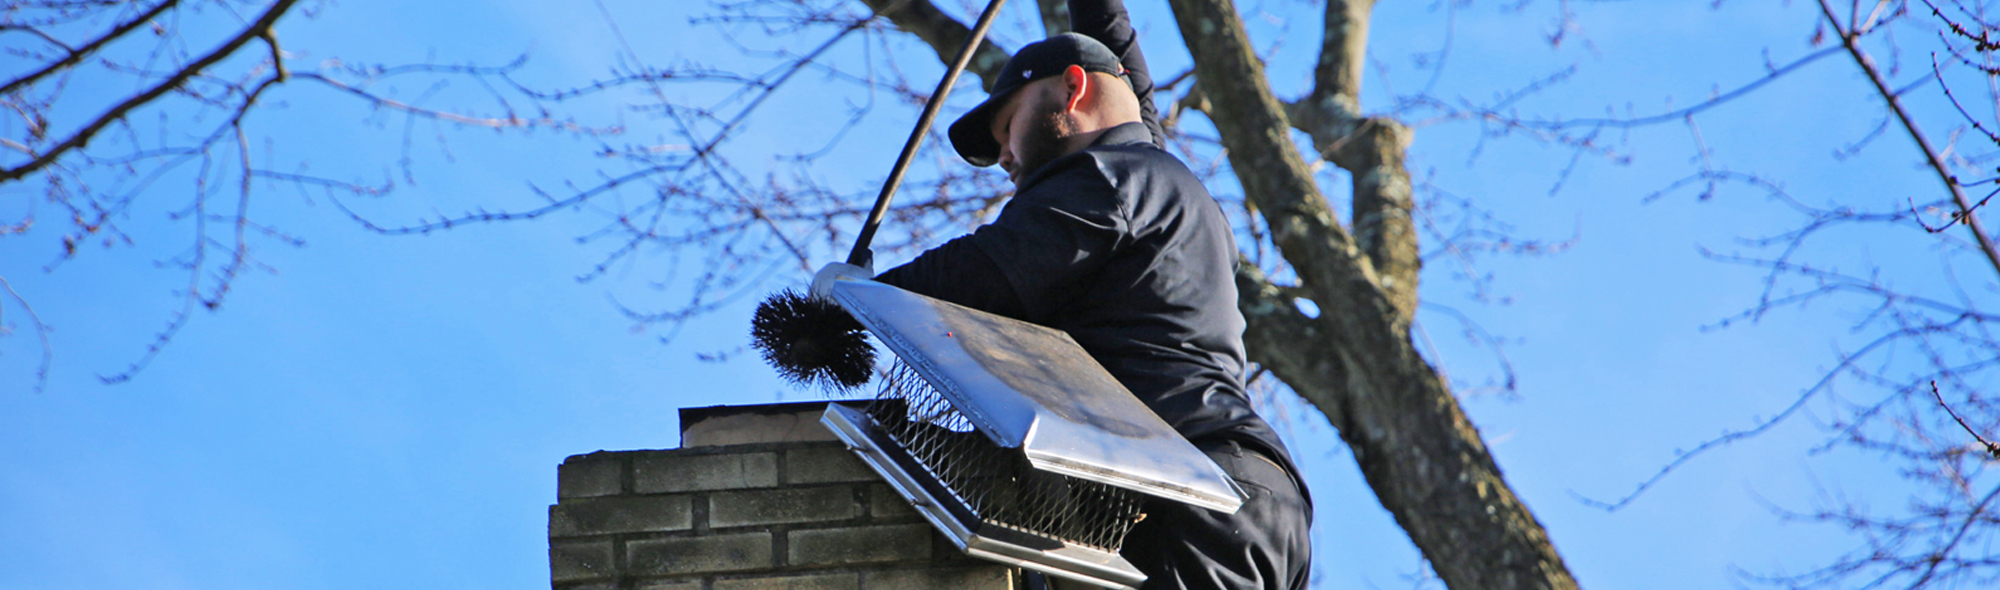 professional chimney sweep and chimney cleaning in fulton md